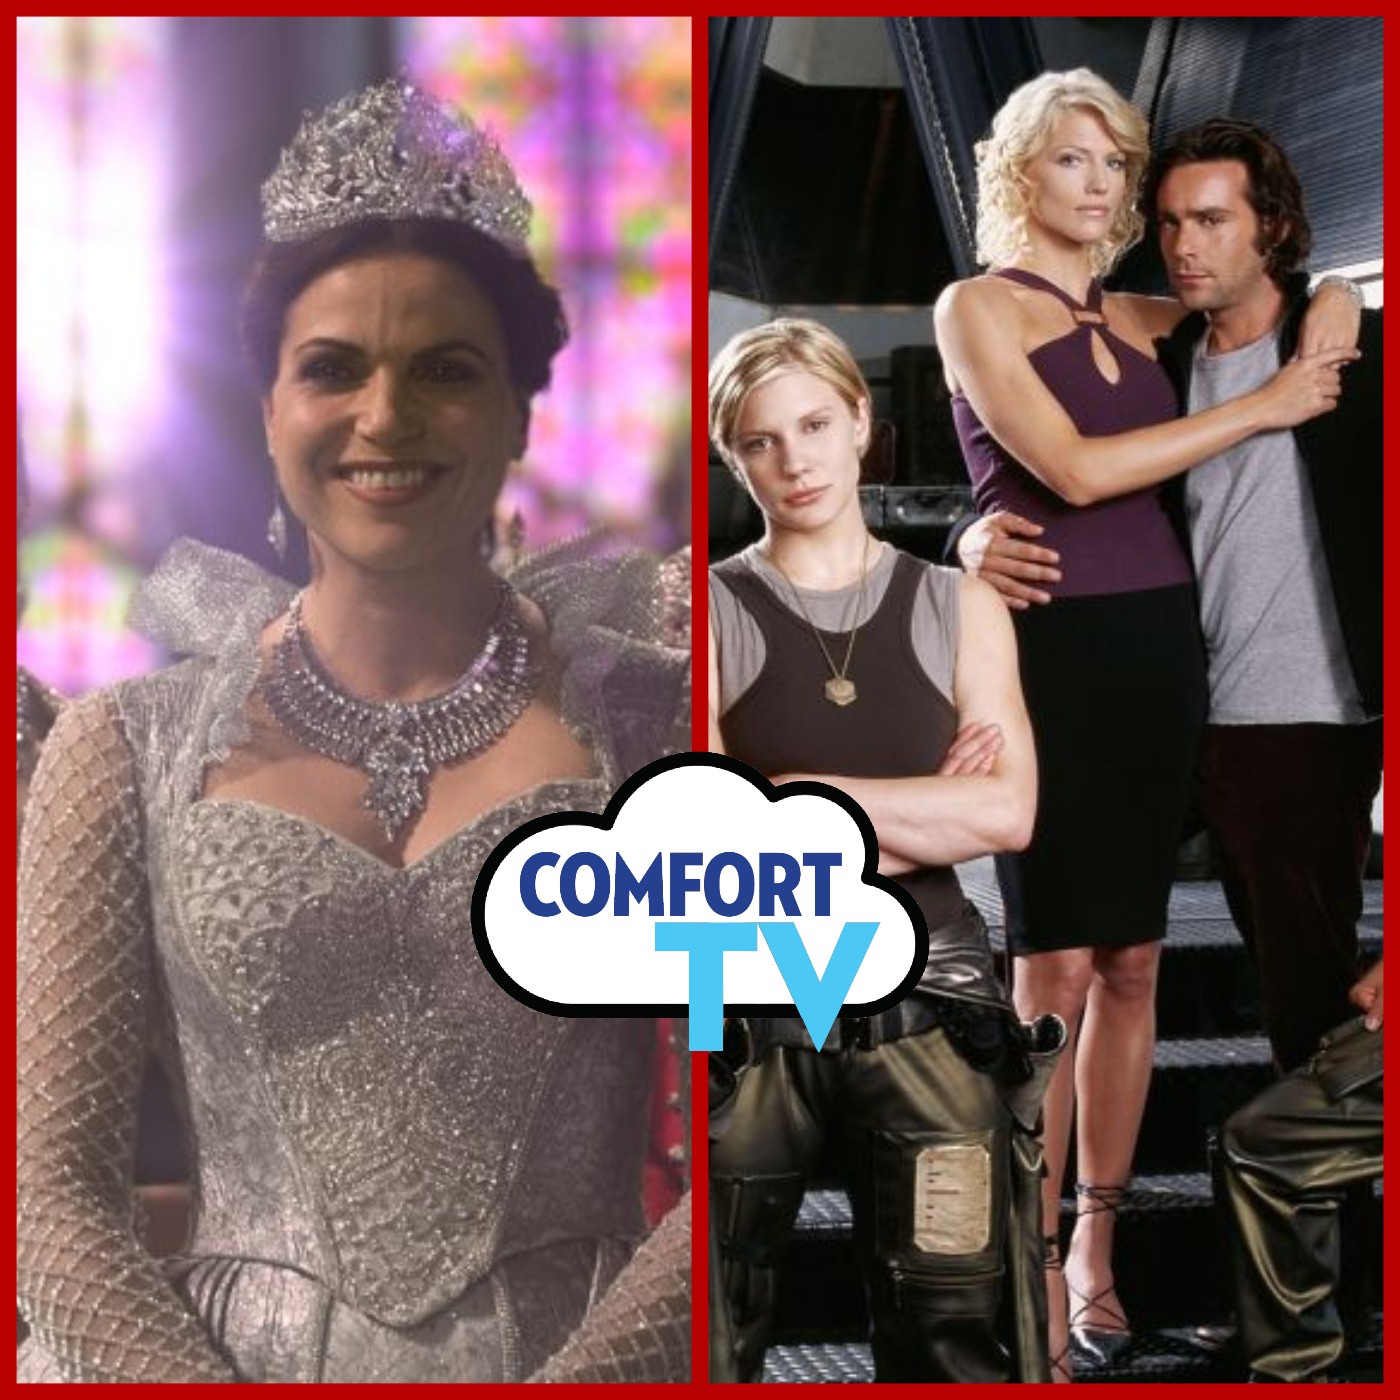 COMFORT TV: Once Upon a Time, Battlestar Galactica, and More!